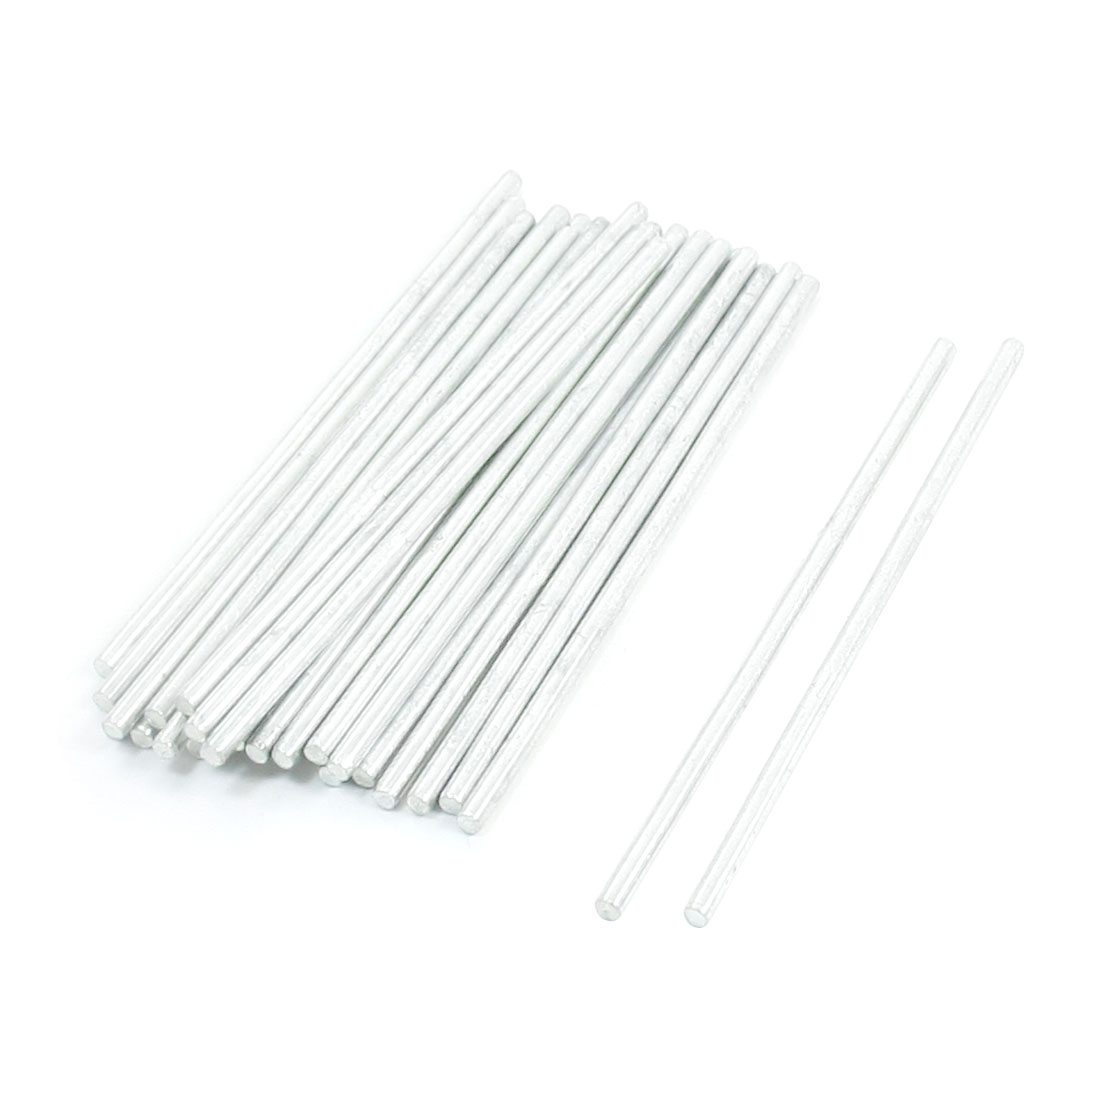 30 Pcs Stainless Steel Round Shaft Axles Rod 66mm x 2mm for RC Toy Car